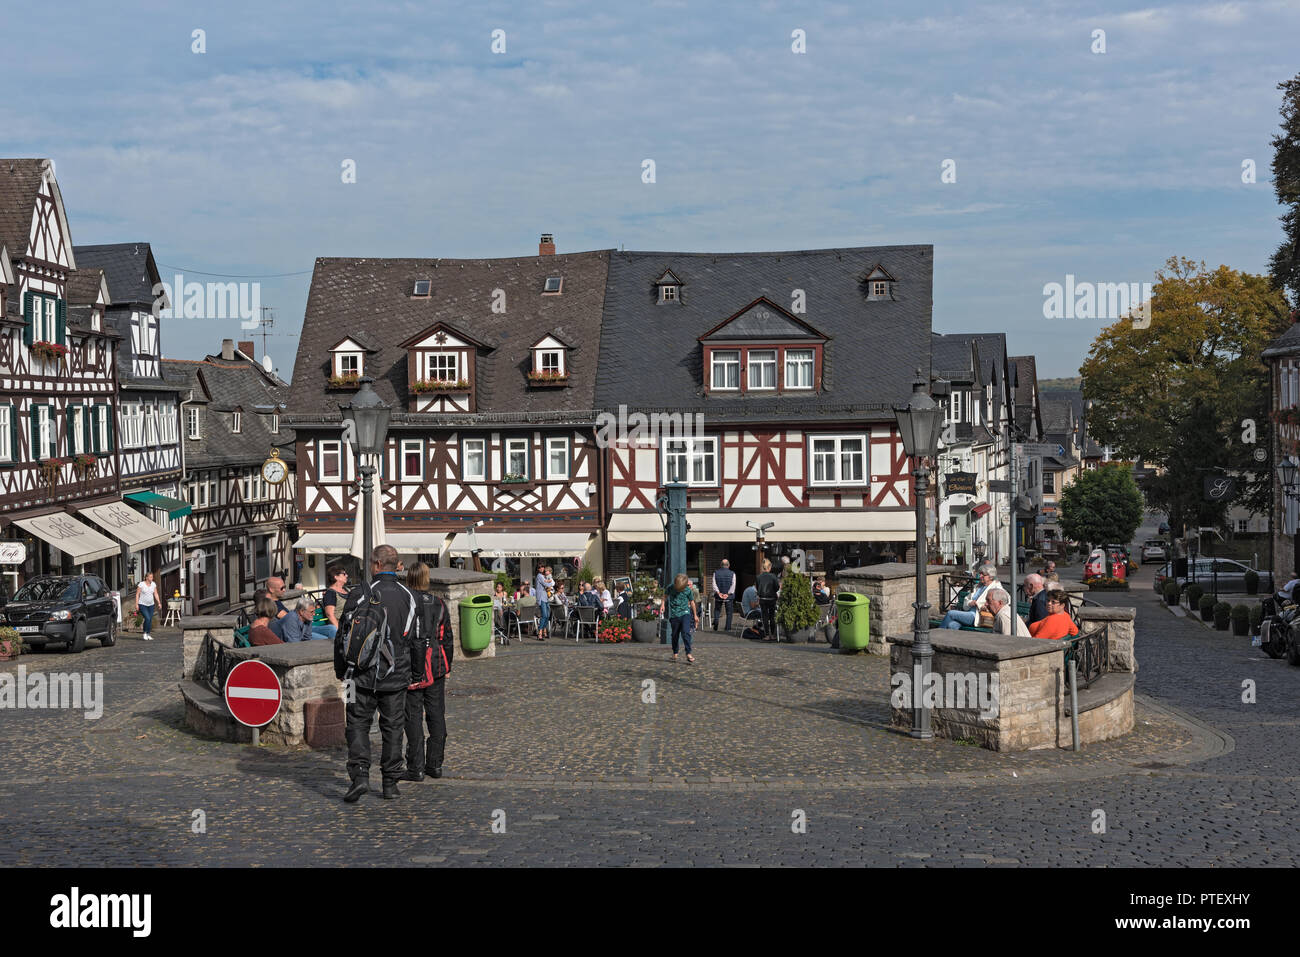 Historic half-timbered houses at the market square in the old town Braunfels, Hessen, Germany. - Stock Image